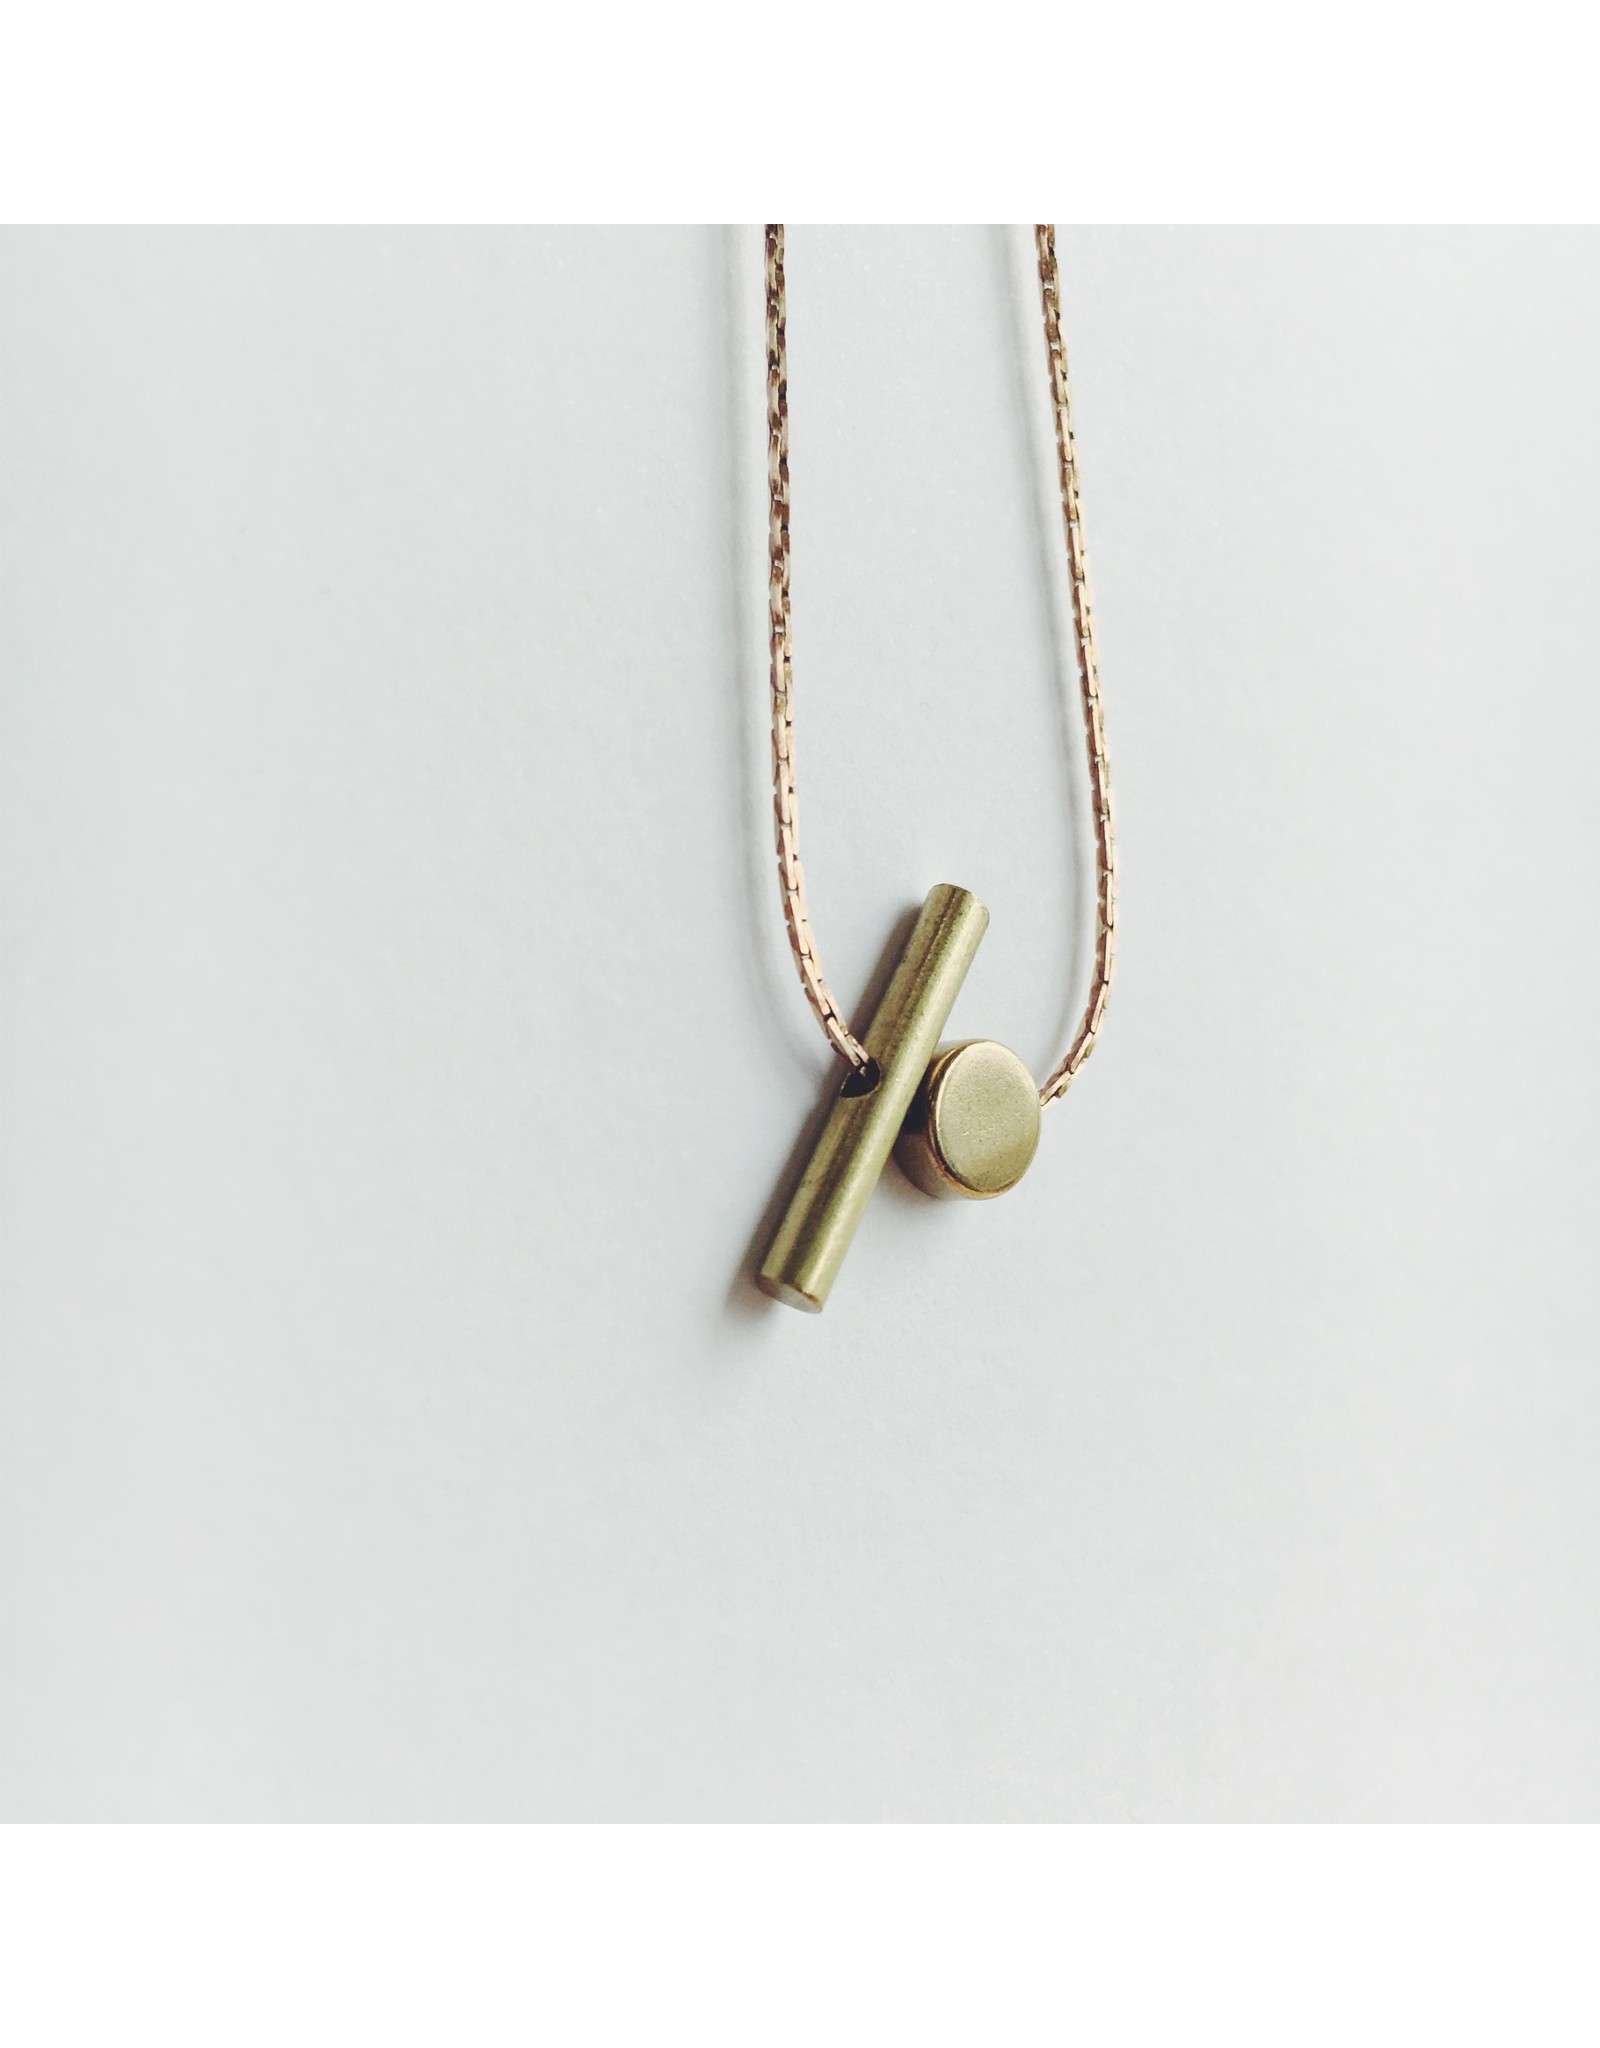 Brass Pill and Cylindrical Bar Necklace lim/003